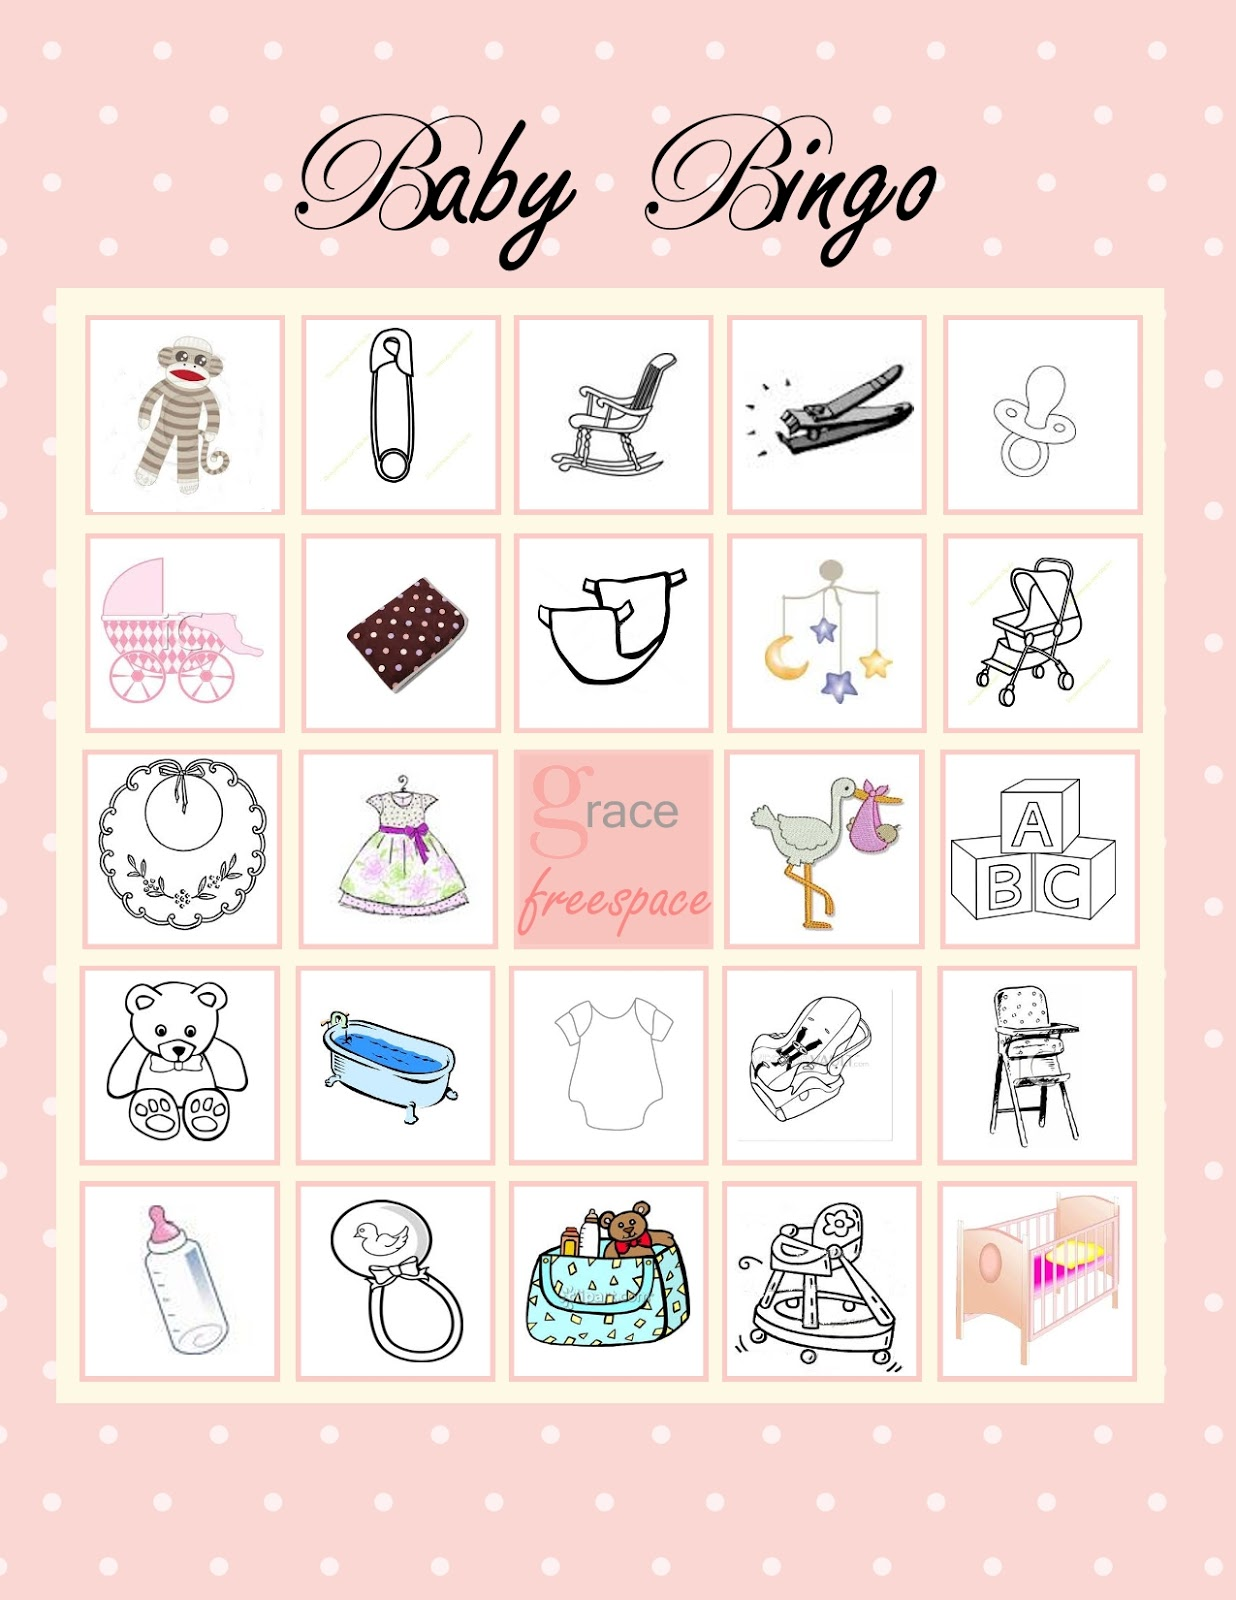 butternut sage designs baby shower bingo cards